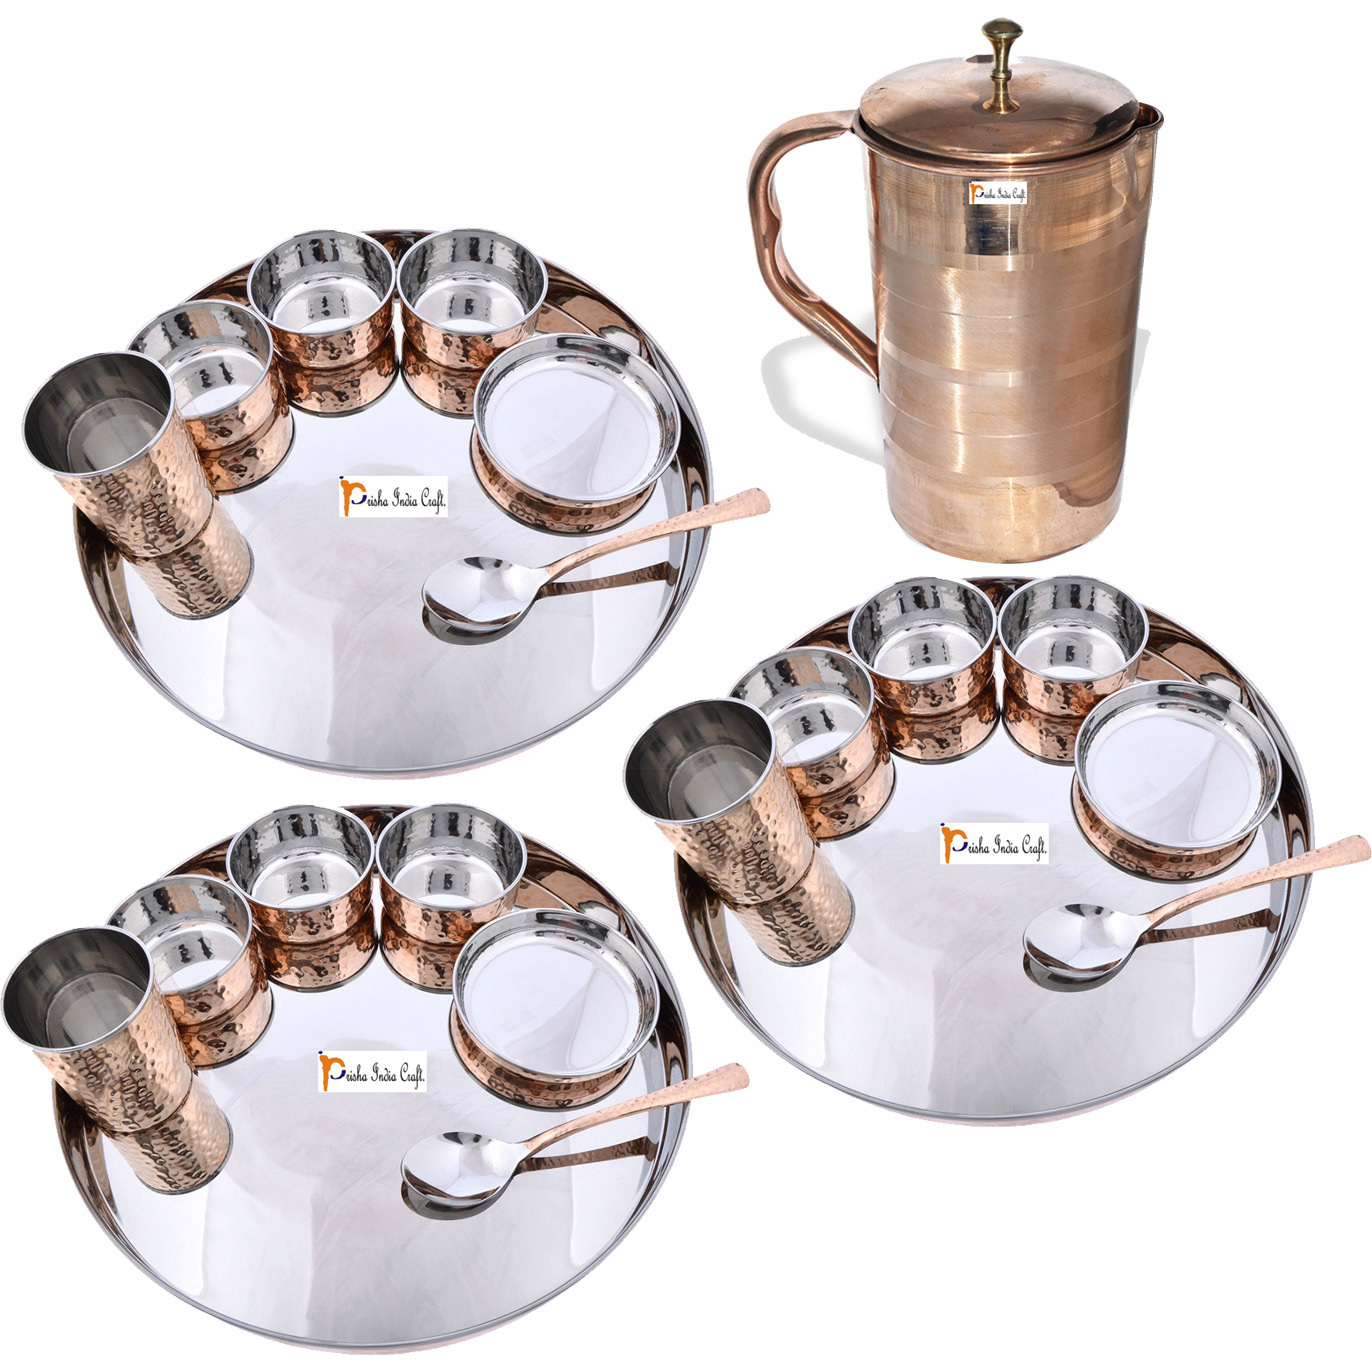 Prisha India Craft B. Set of 3 Dinnerware Traditional Stainless Steel Copper Dinner Set of Thali Plate, Bowls, Glass and Spoon, Dia 13  With 1 Luxury Style Pure Copper Pitcher Jug - Christmas Gift